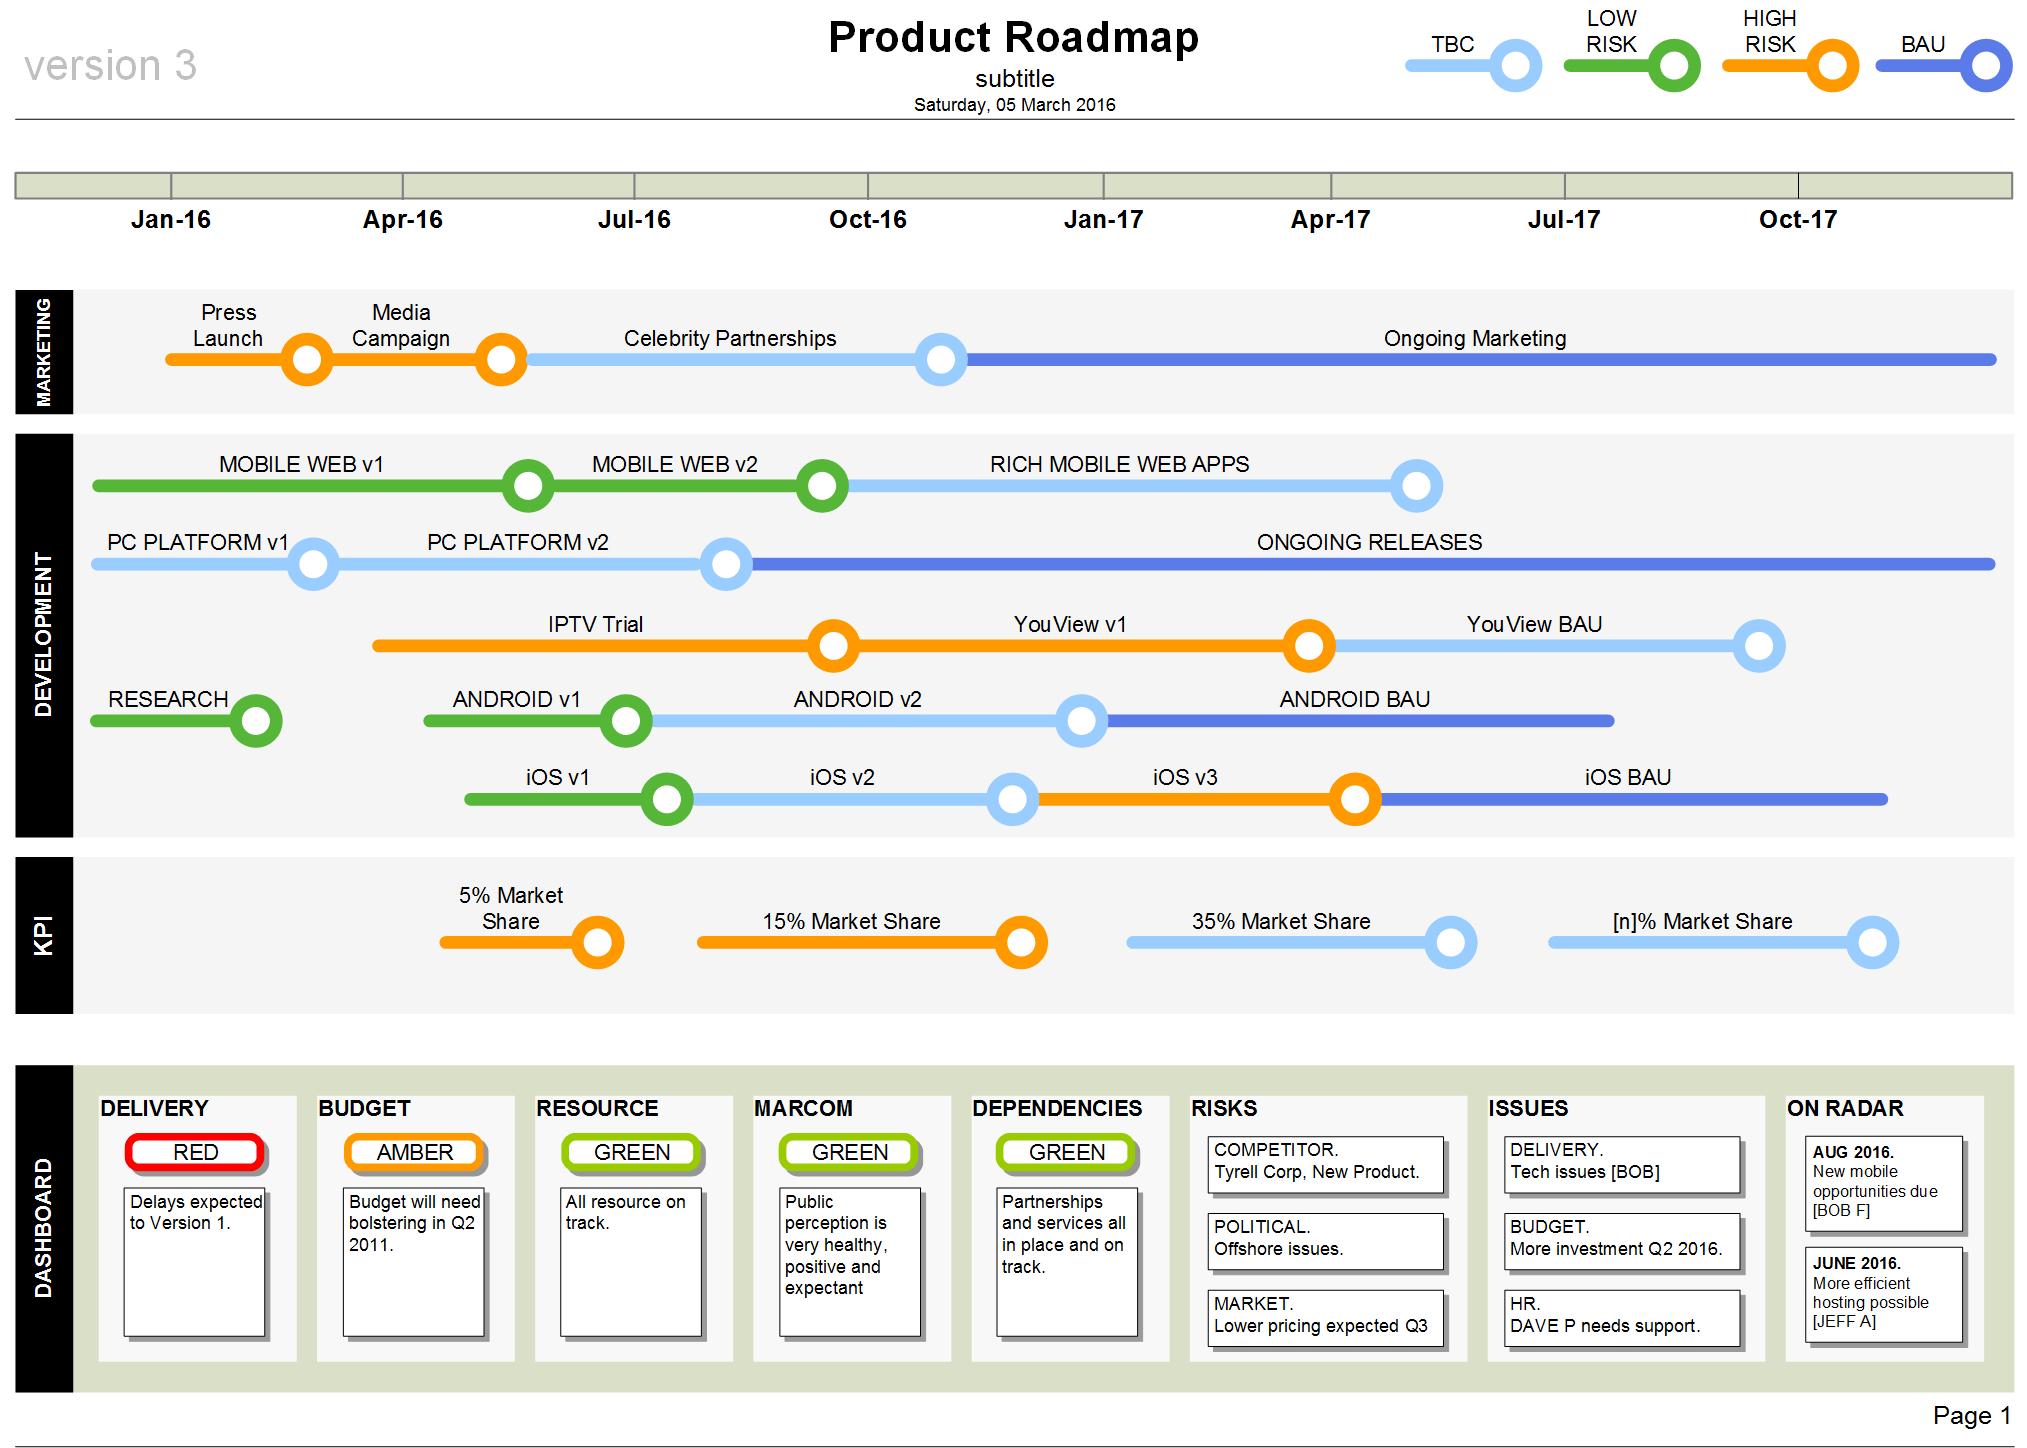 Product Roadmap Template Visio